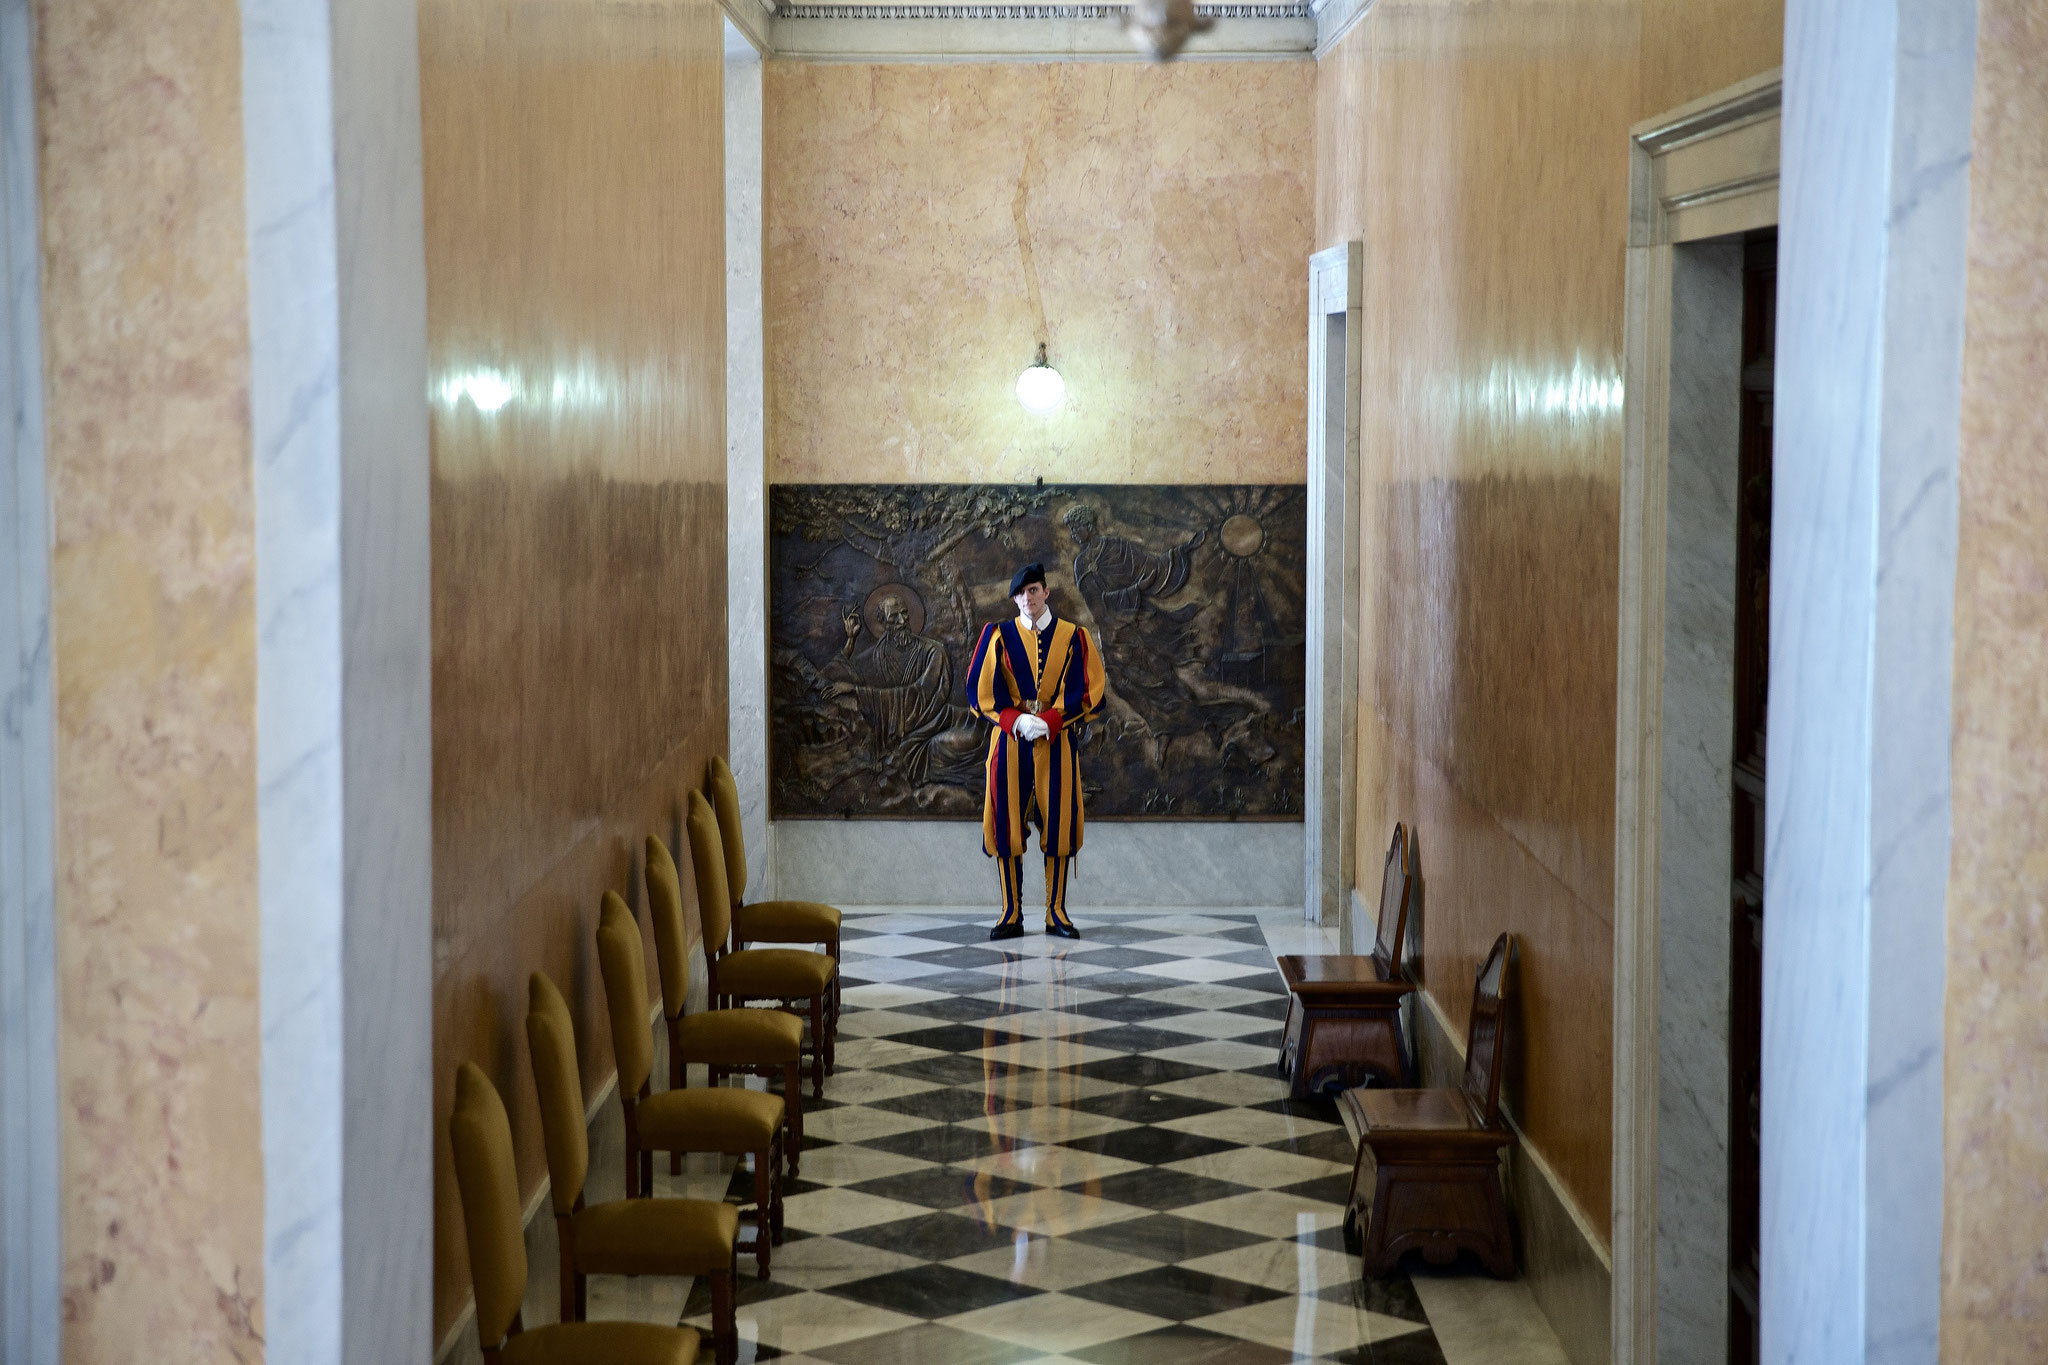 A Swiss Guard during his service in the Papal Palace.